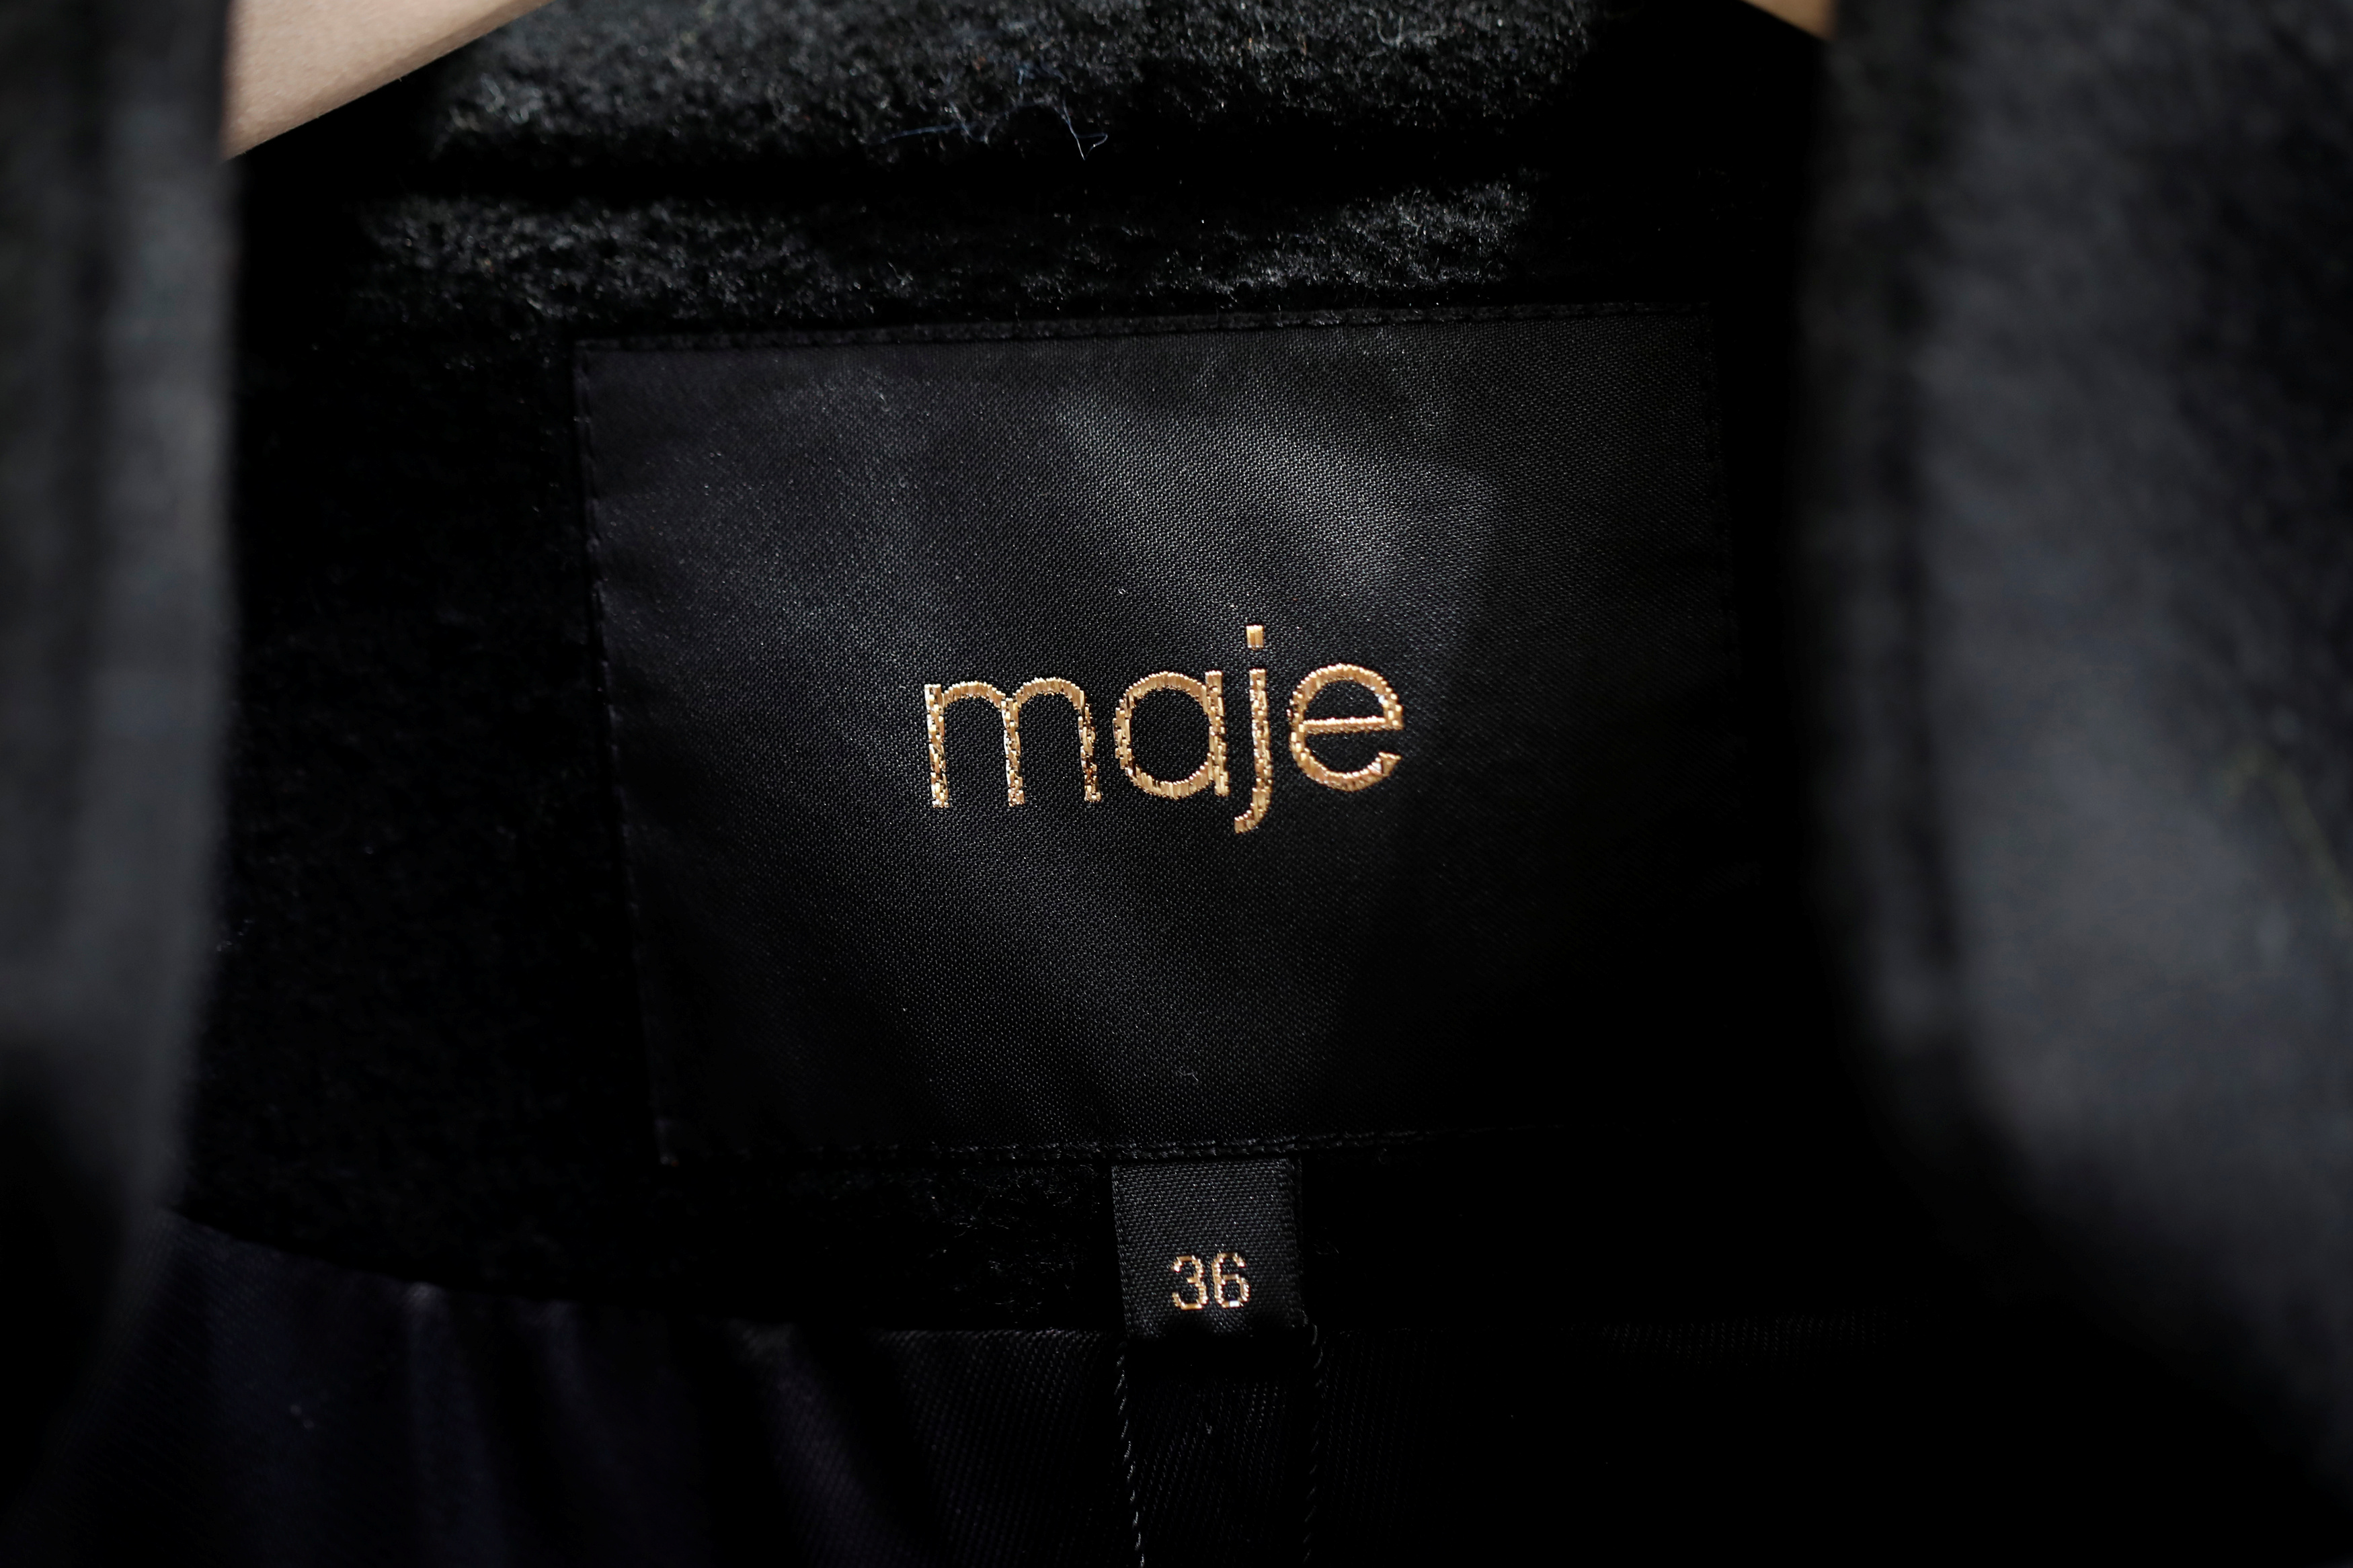 A Maje label is pictured on clothes inside a Maje luxury clothing store, operated by SMCP Group, in Paris, France, December 21, 2017. REUTERS/Benoit Tessier